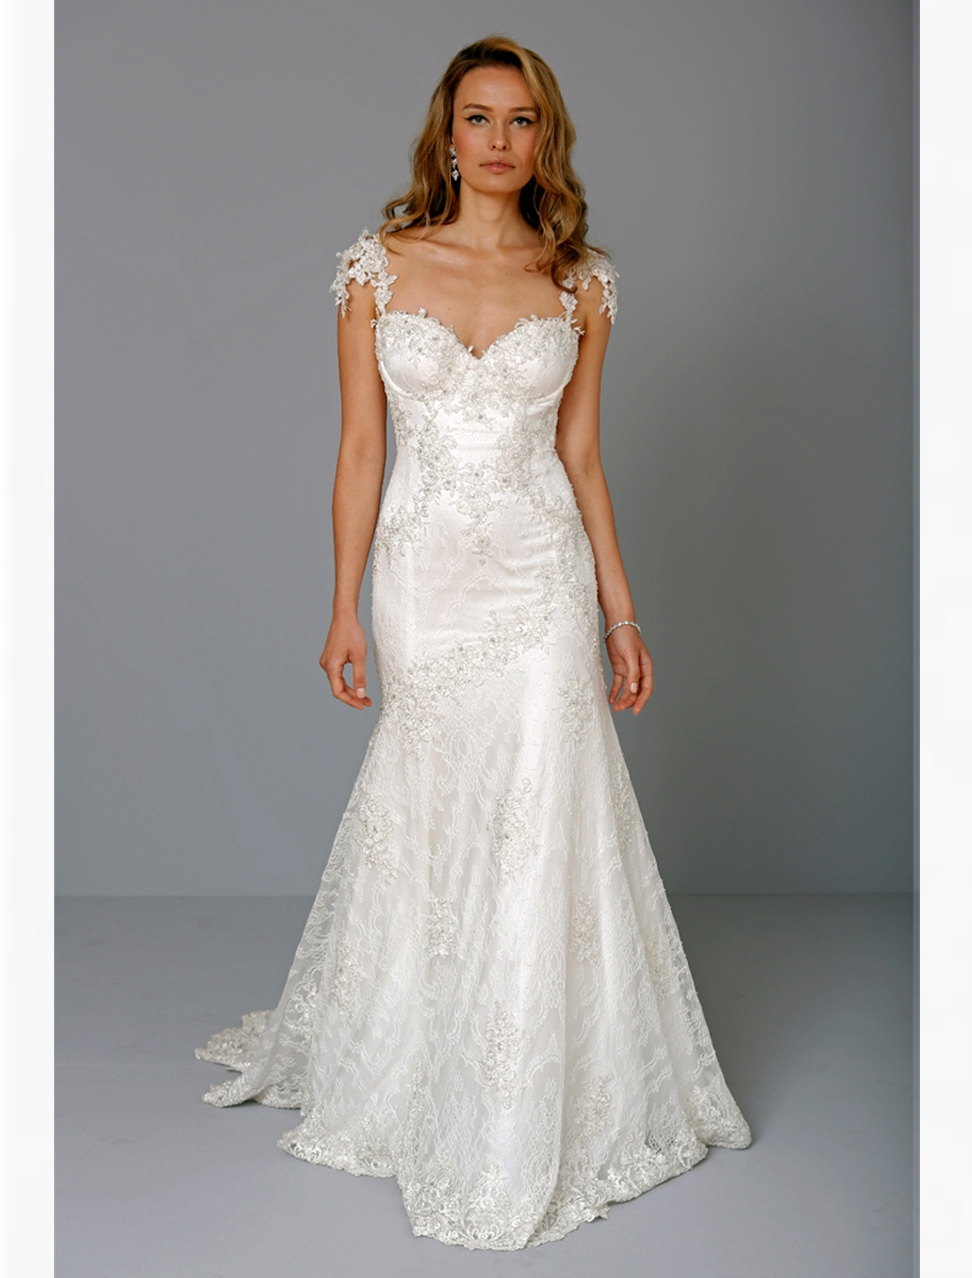 : pnina tornai wedding dresses 2014